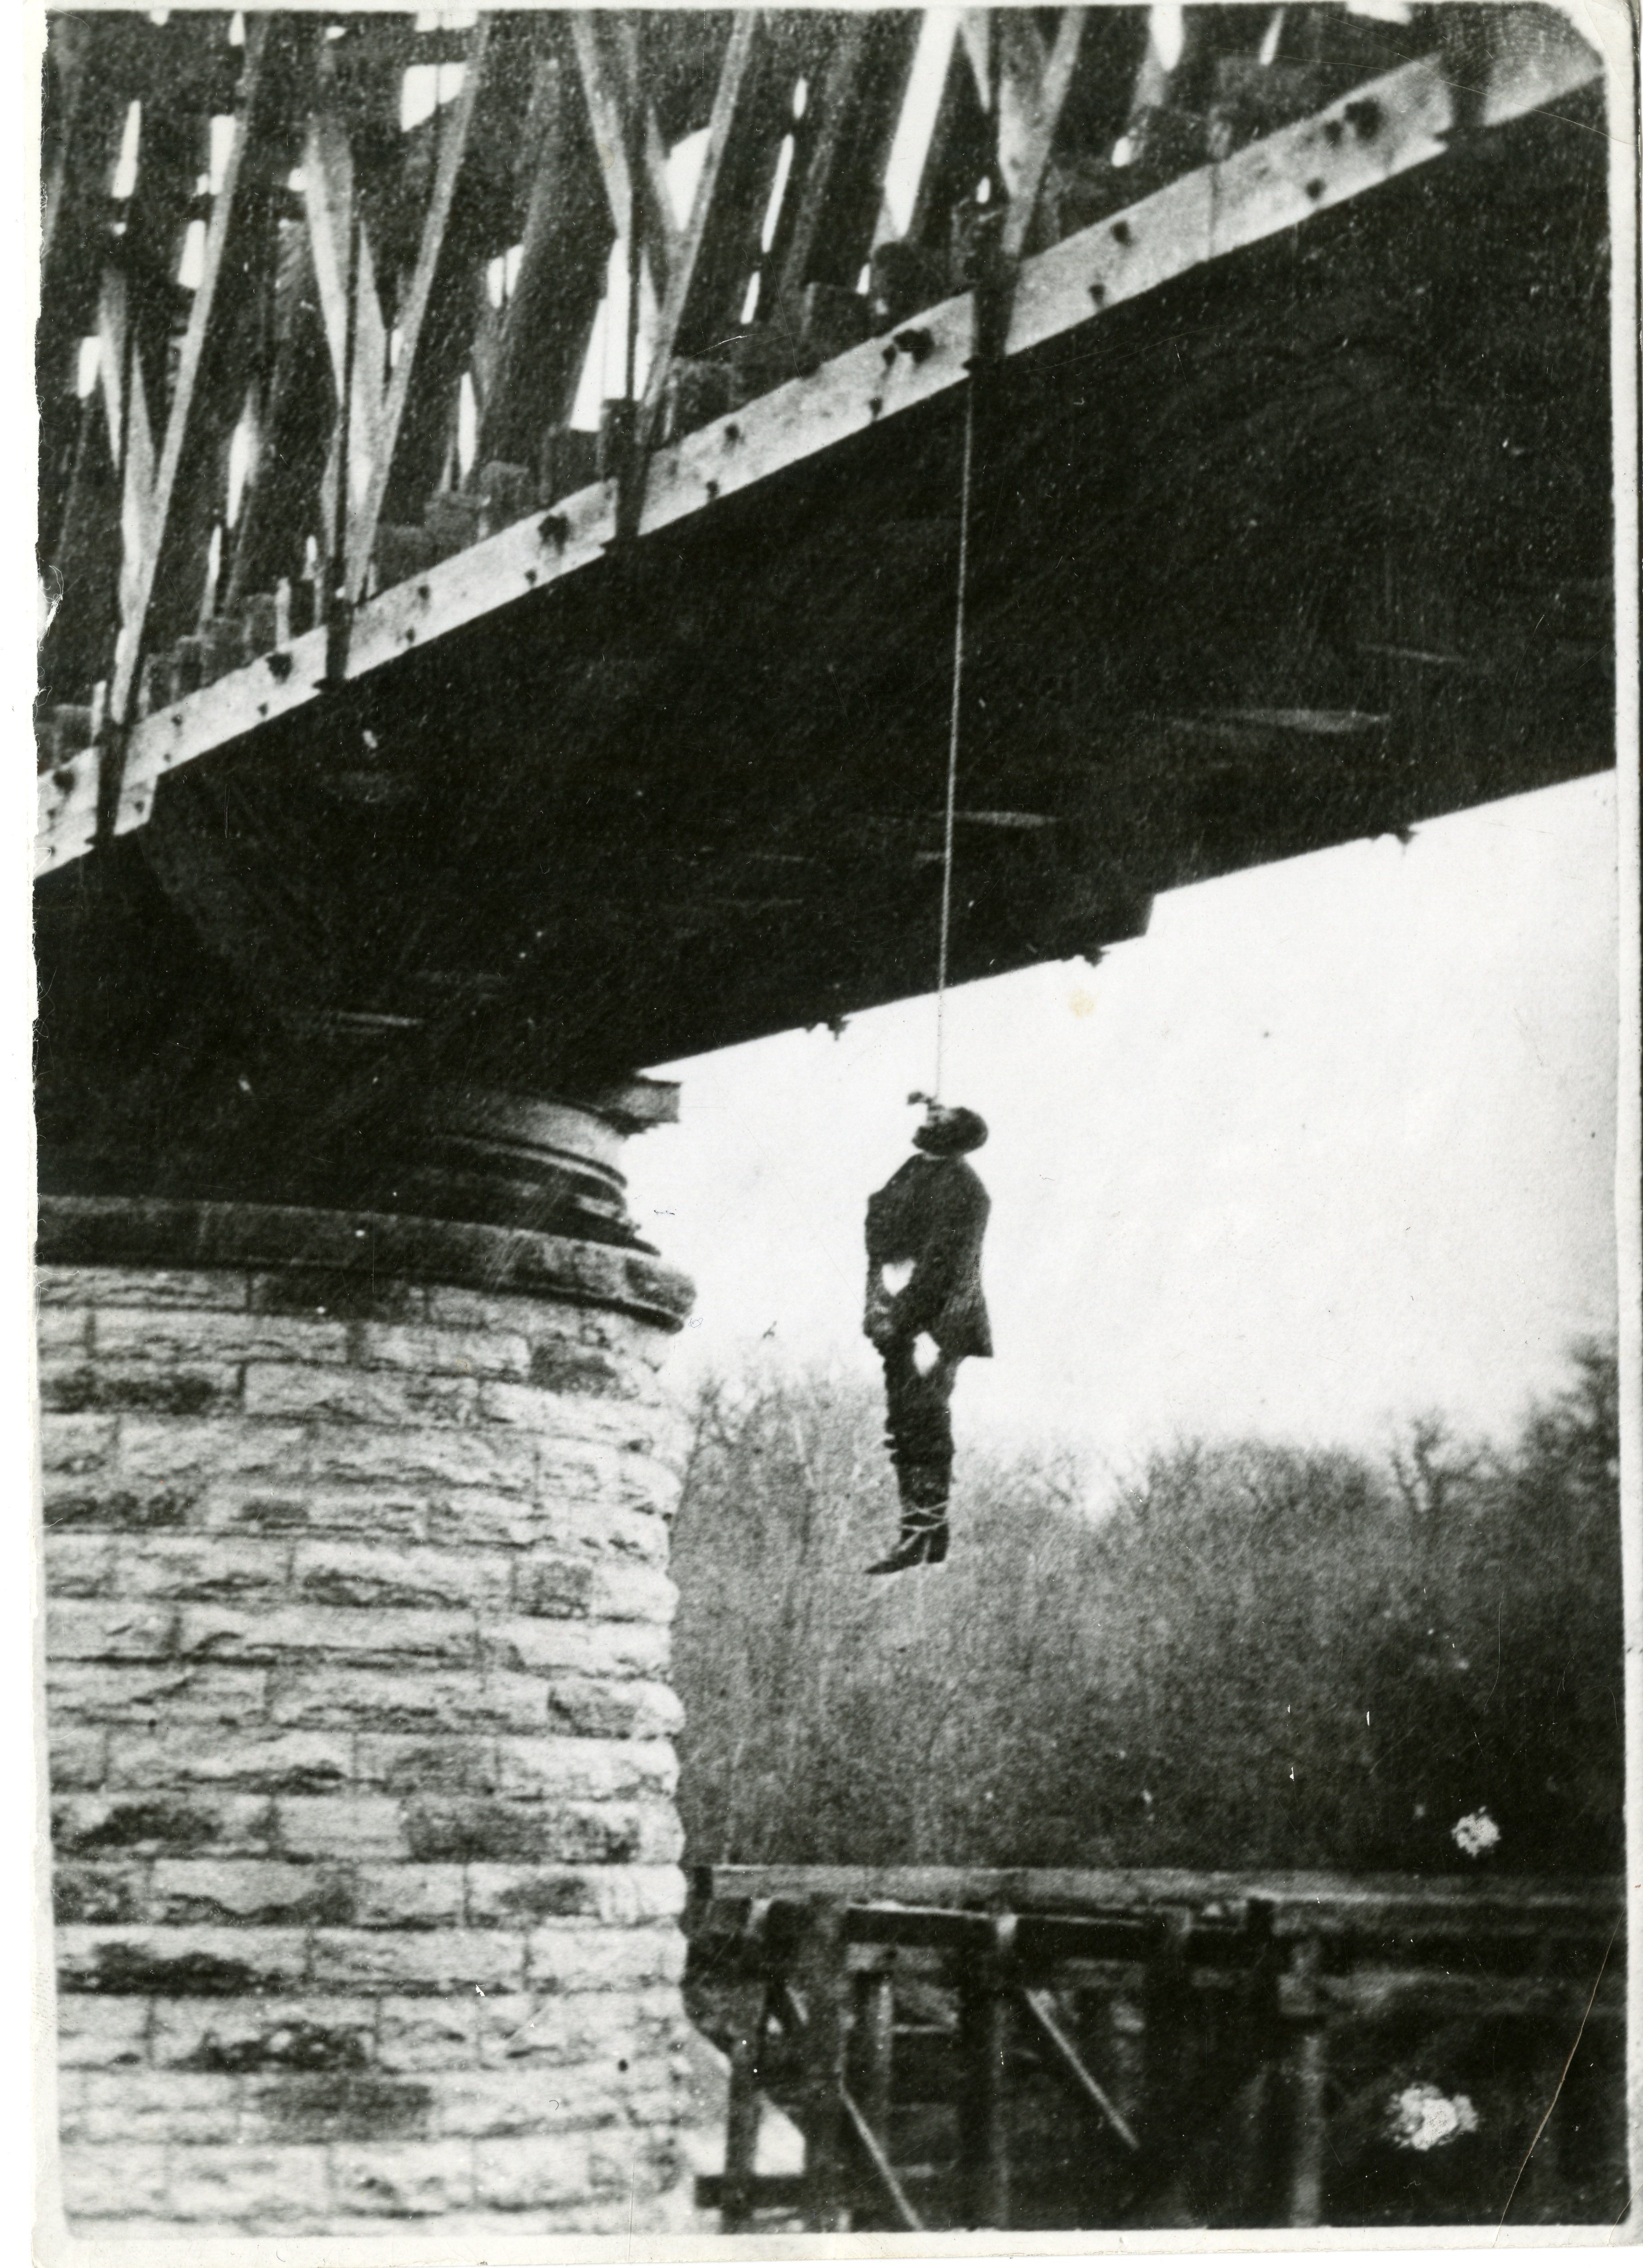 The Daily Herald (Grand Forks, Dakota Territory) photograph of Charles Thurber hanging from the railroad bridge on October 25, 1882.